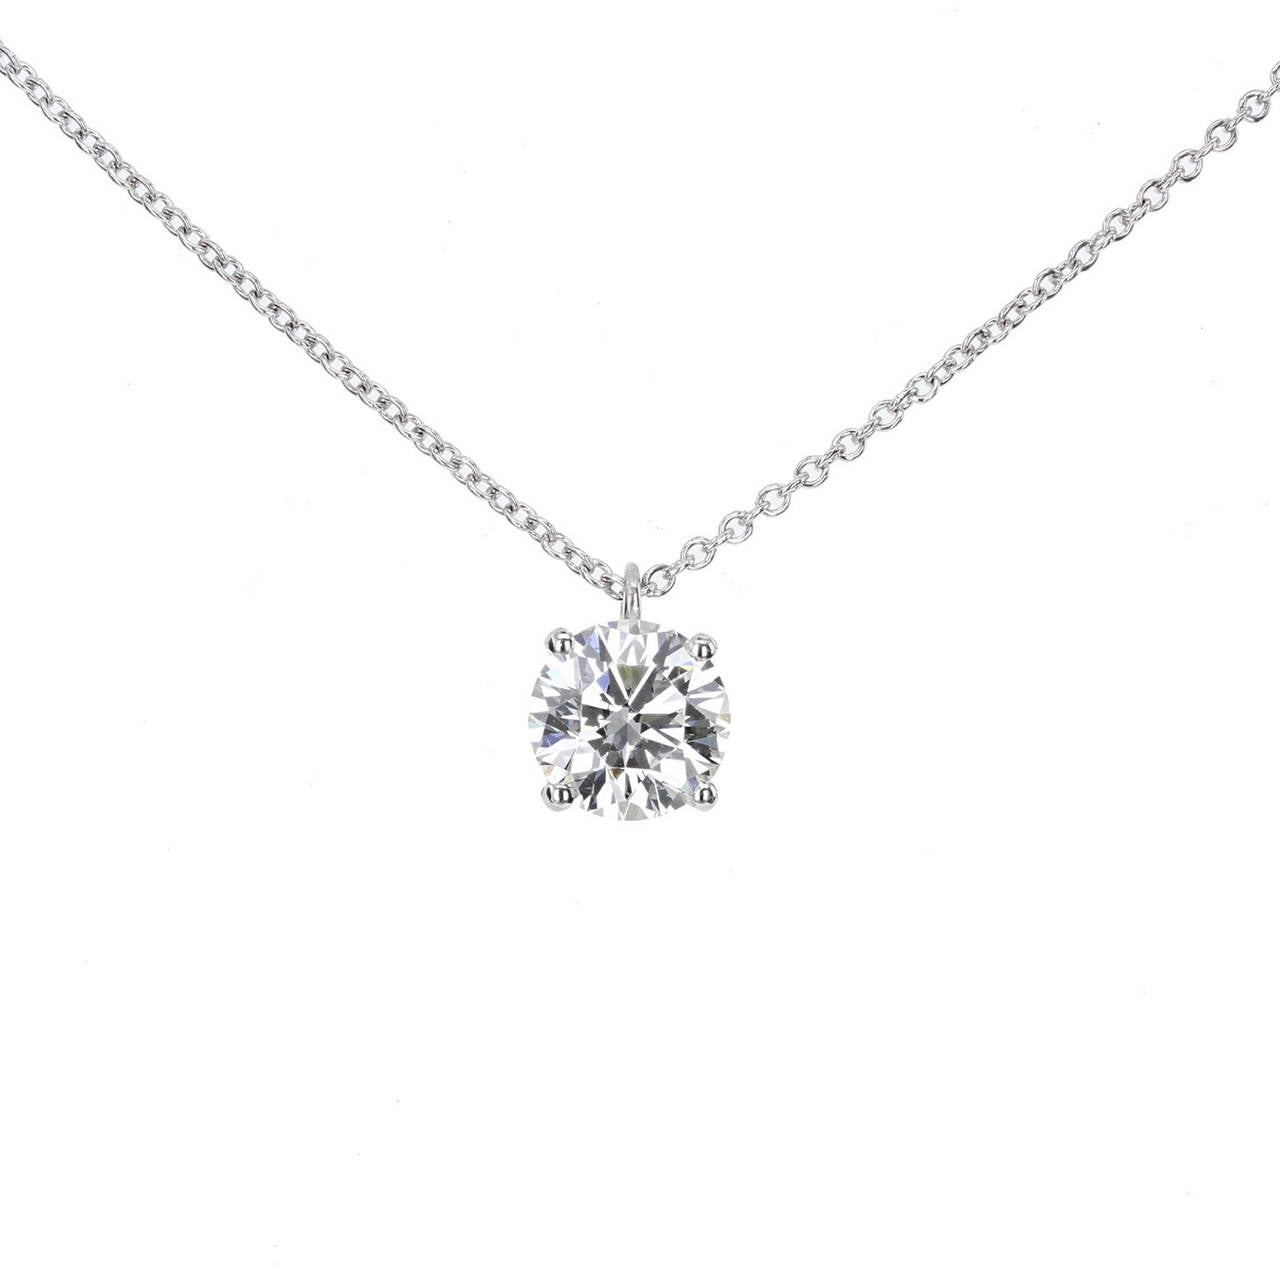 Tiffany & Co. Brilliant Cut Diamond Platinum Pendant For Sale